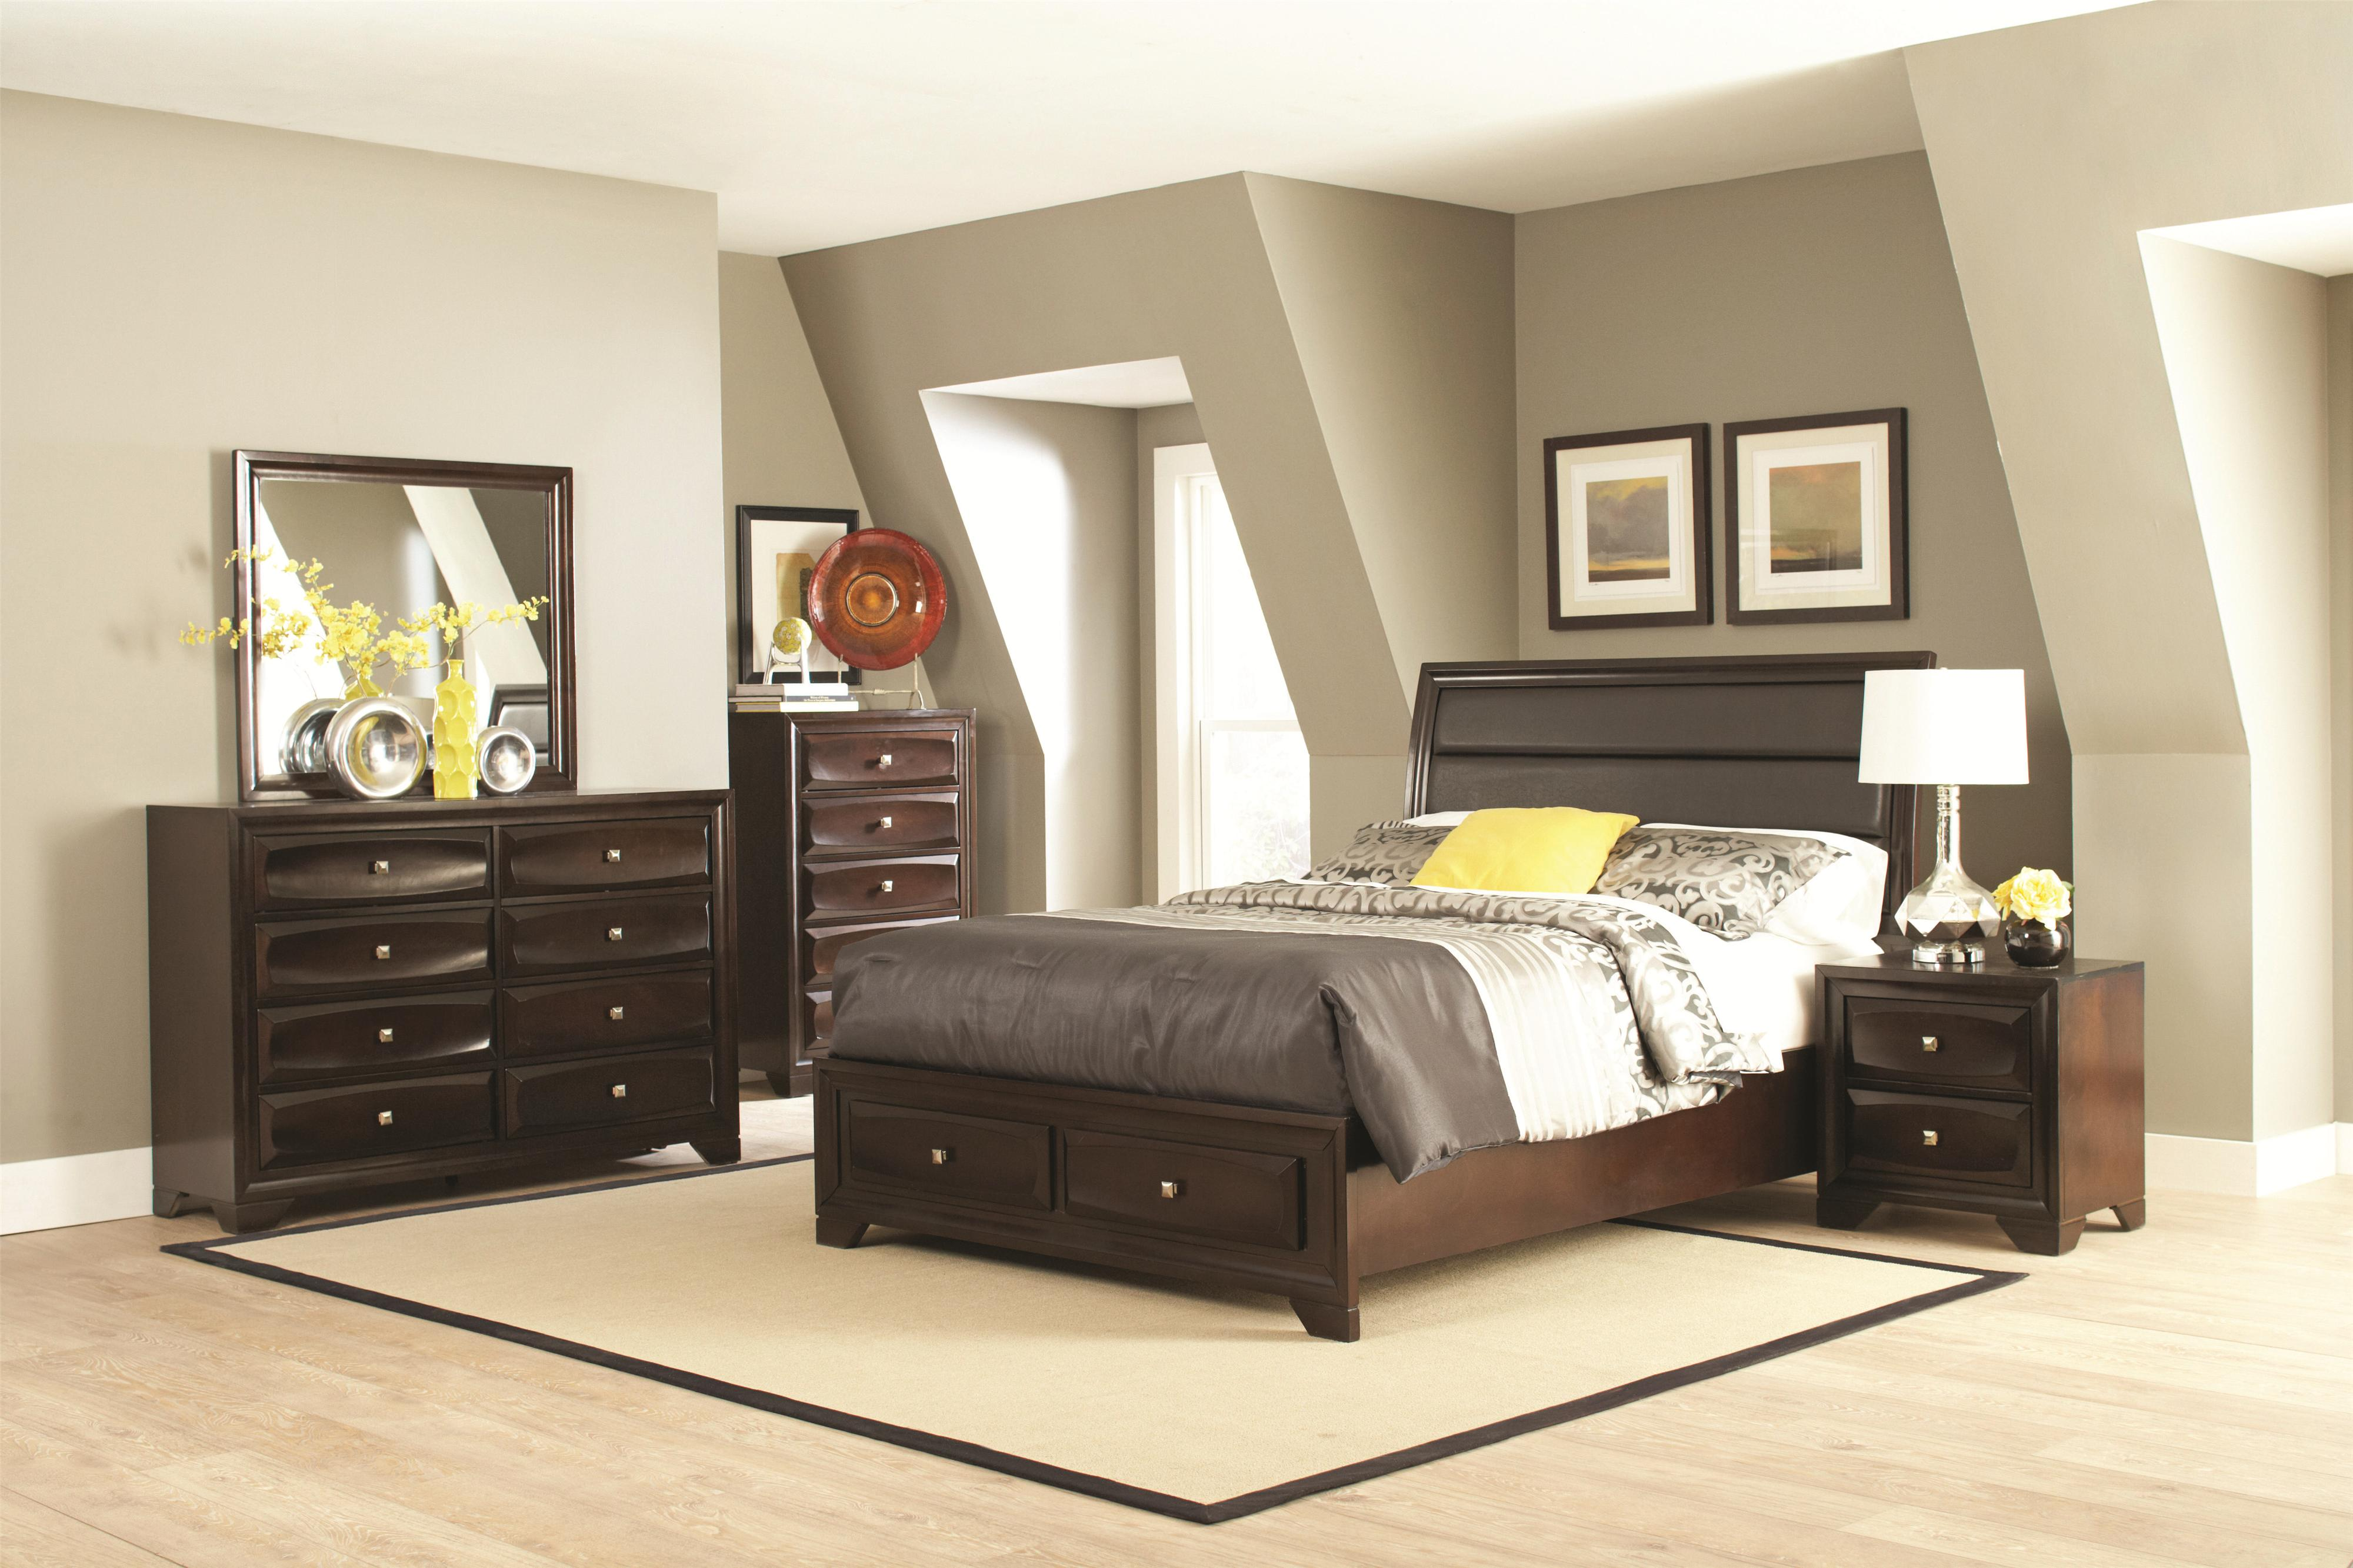 Jaxson Cal King Bedroom Group by Coaster at Northeast Factory Direct